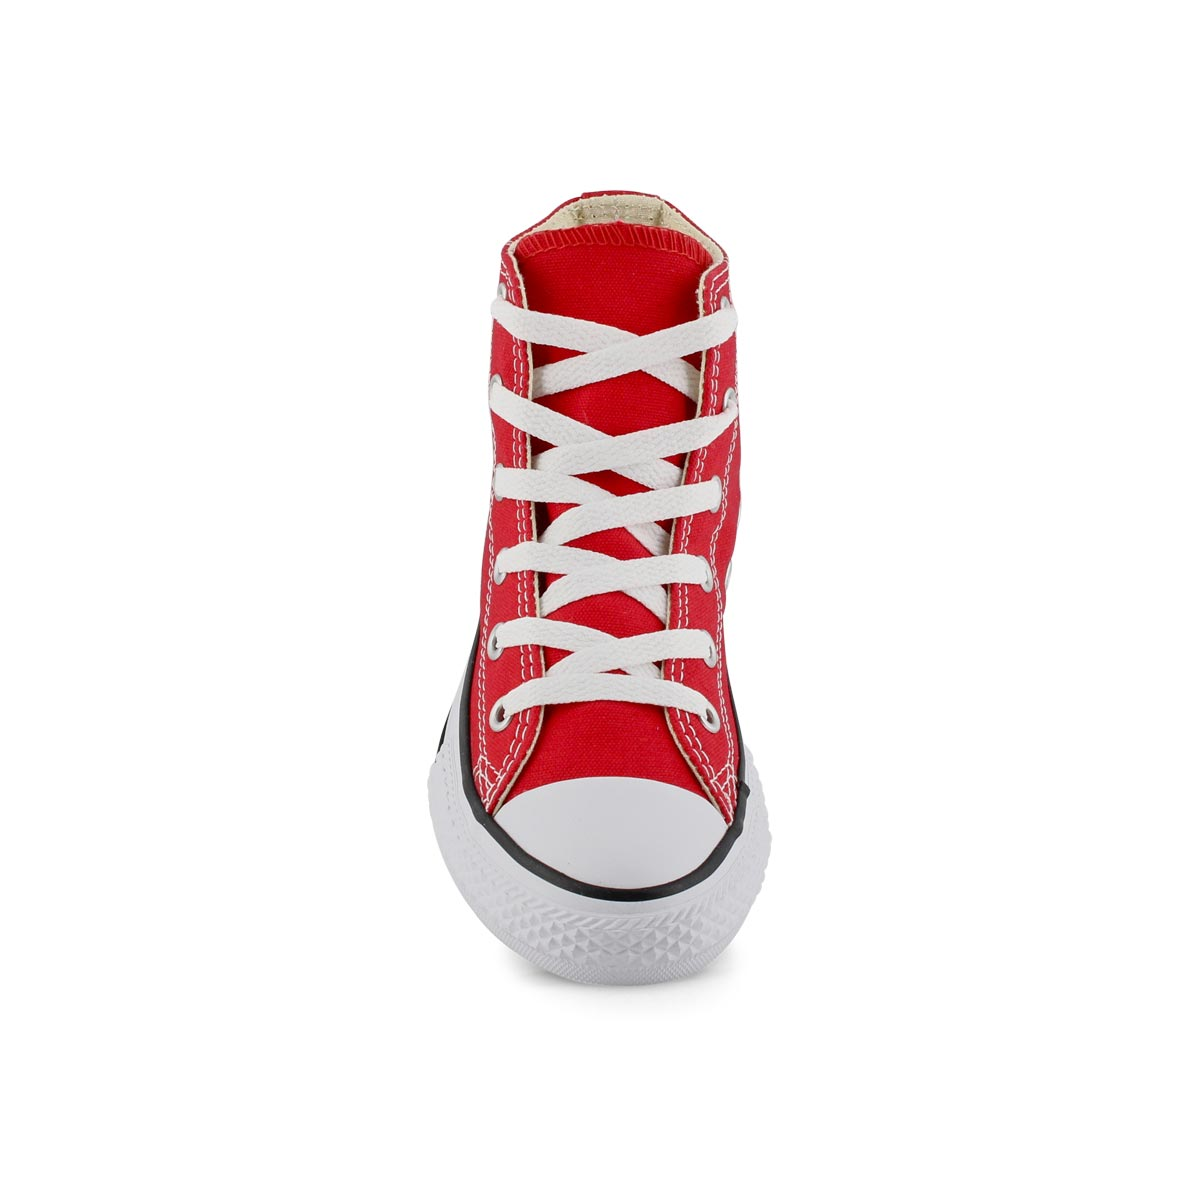 Kds CTAS Core red high top sneaker